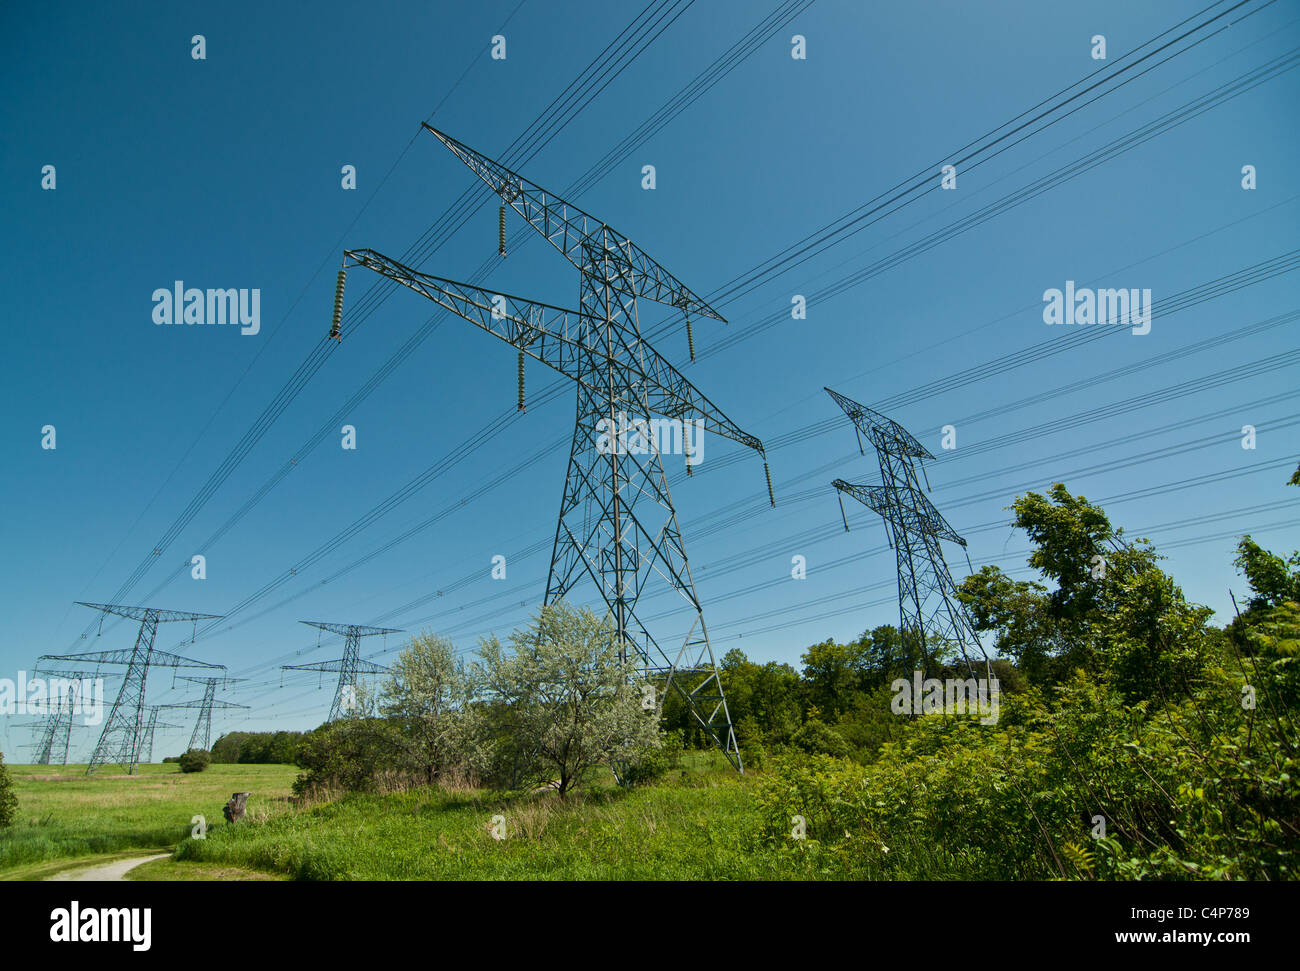 A long line of electrical transmission towers carrying high voltage lines. - Stock Image